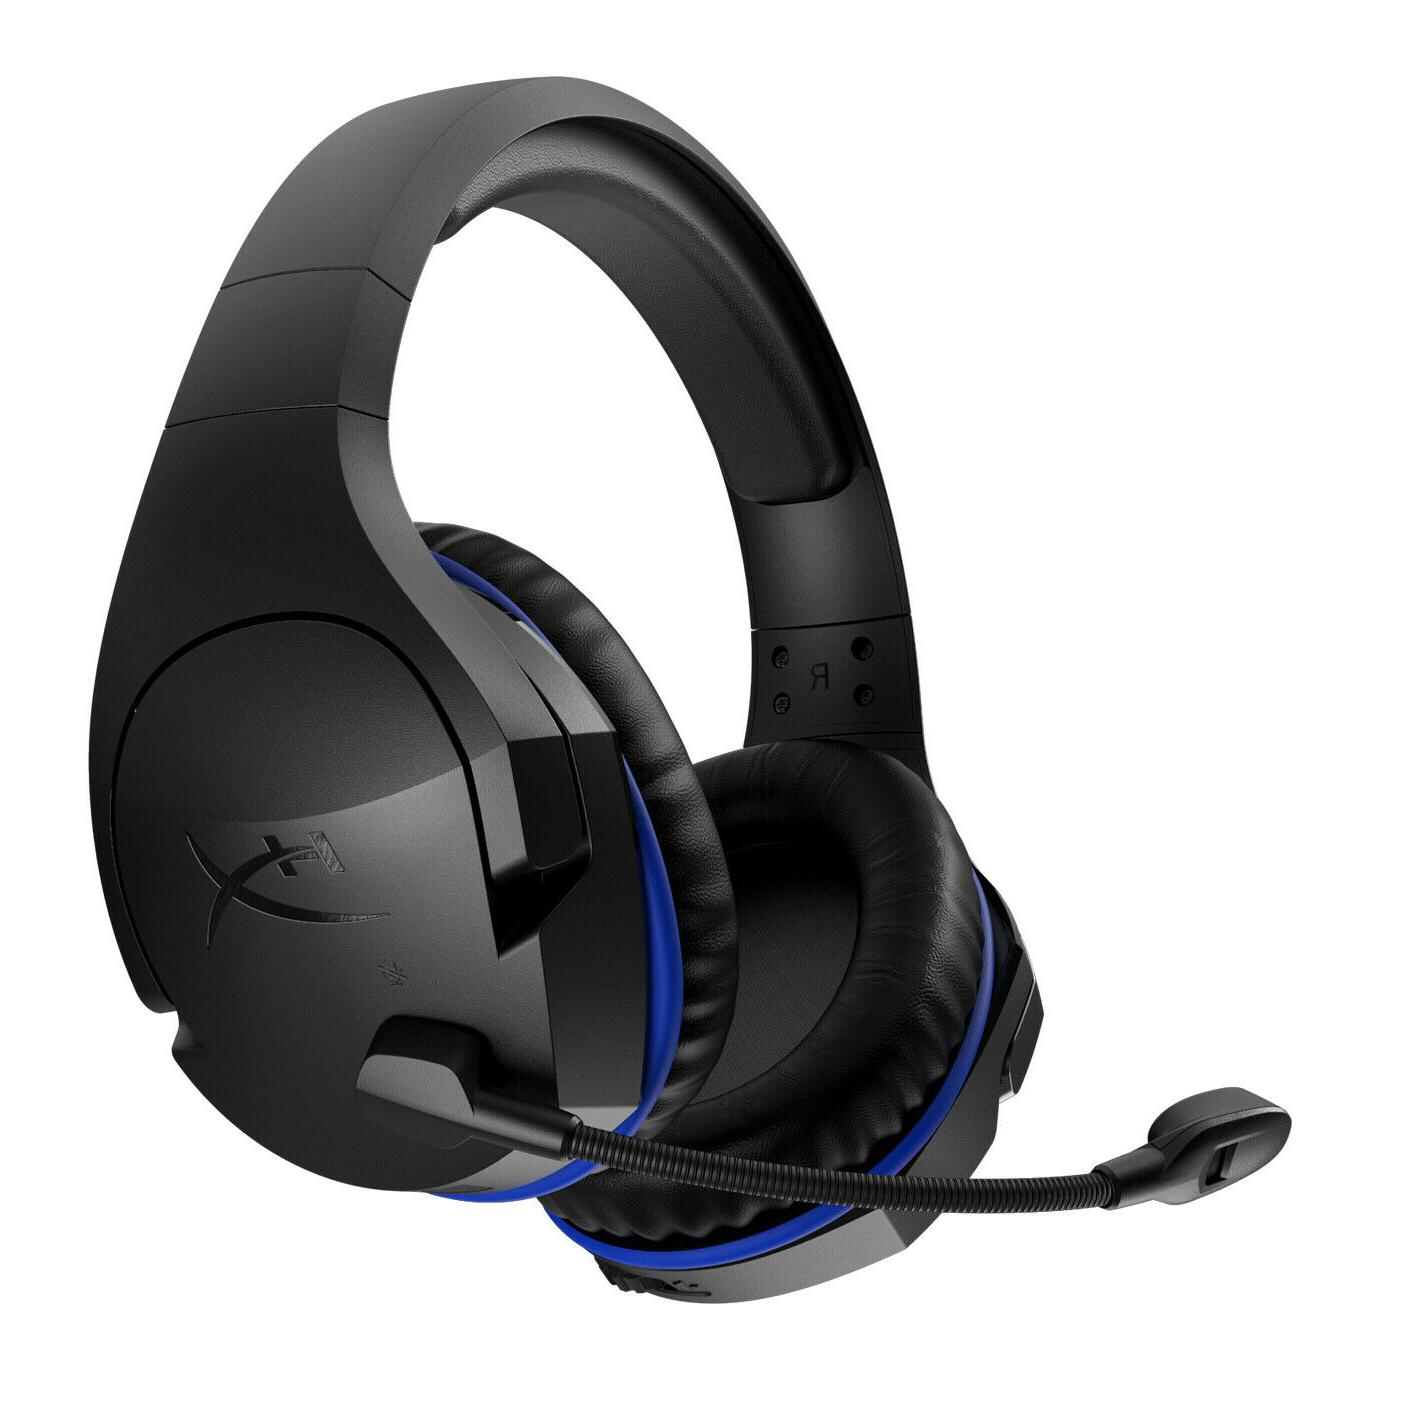 HyperX Gaming Headset Lasting up to 17hr